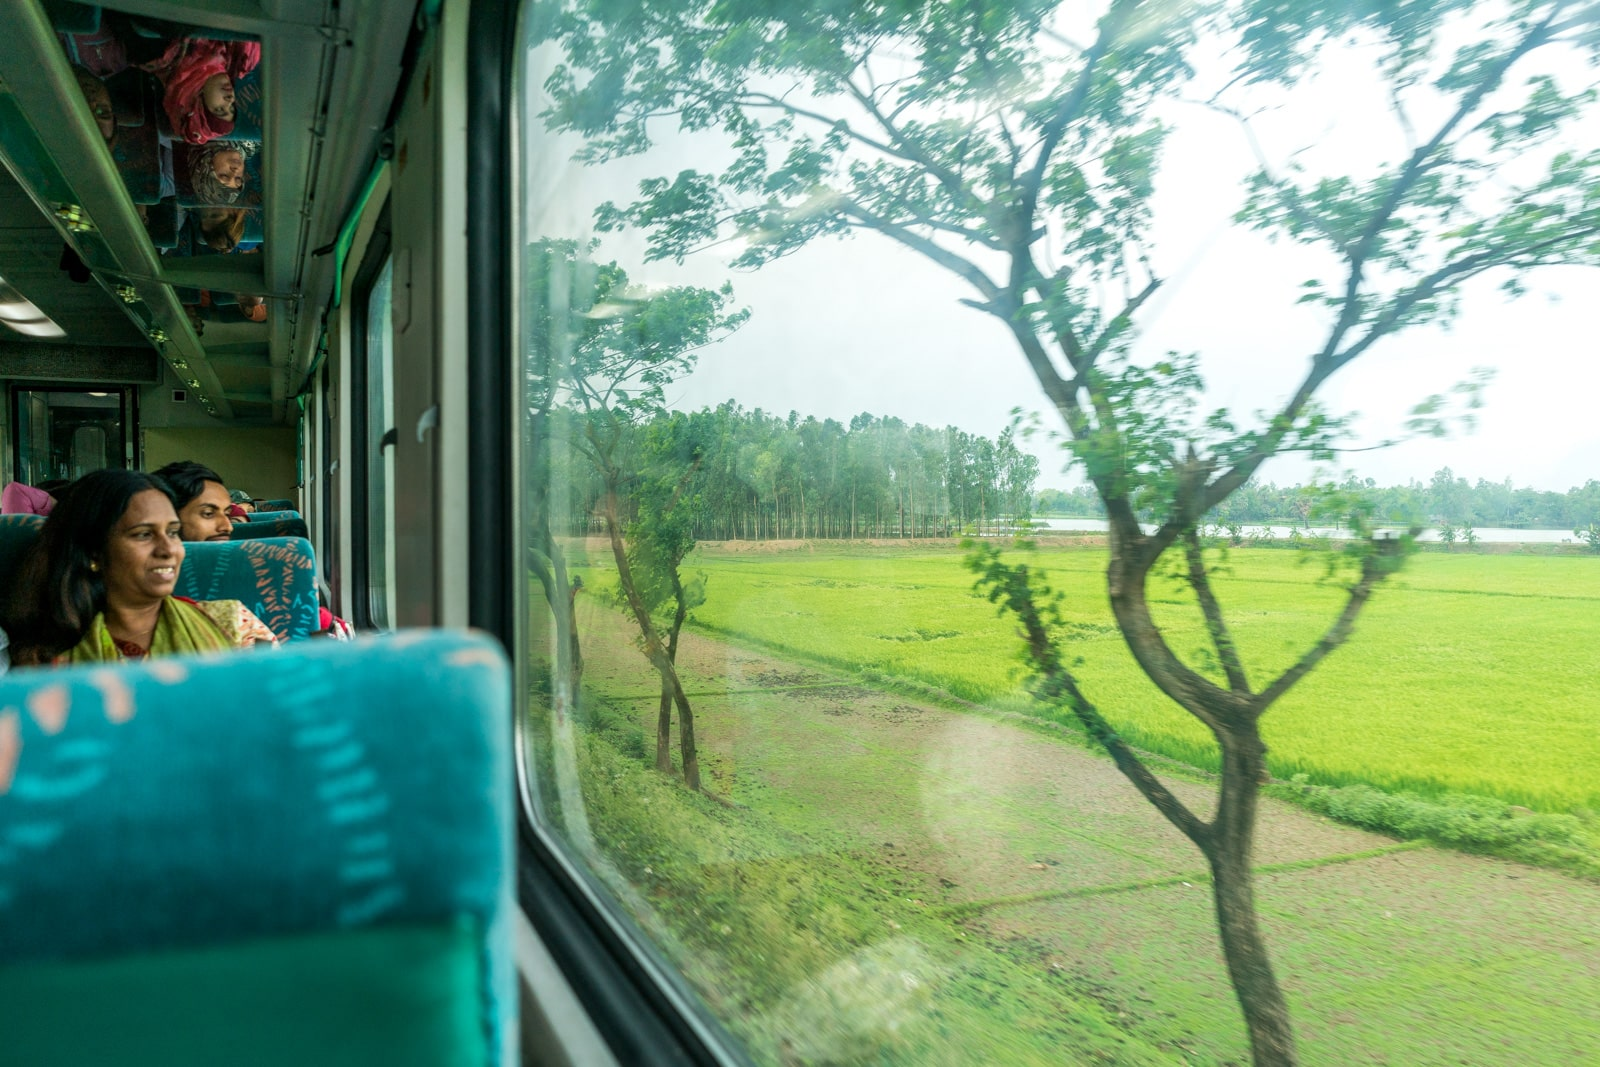 How to take the train from Bangladesh to India - Greenery along the way - Lost With Purpose travel blog